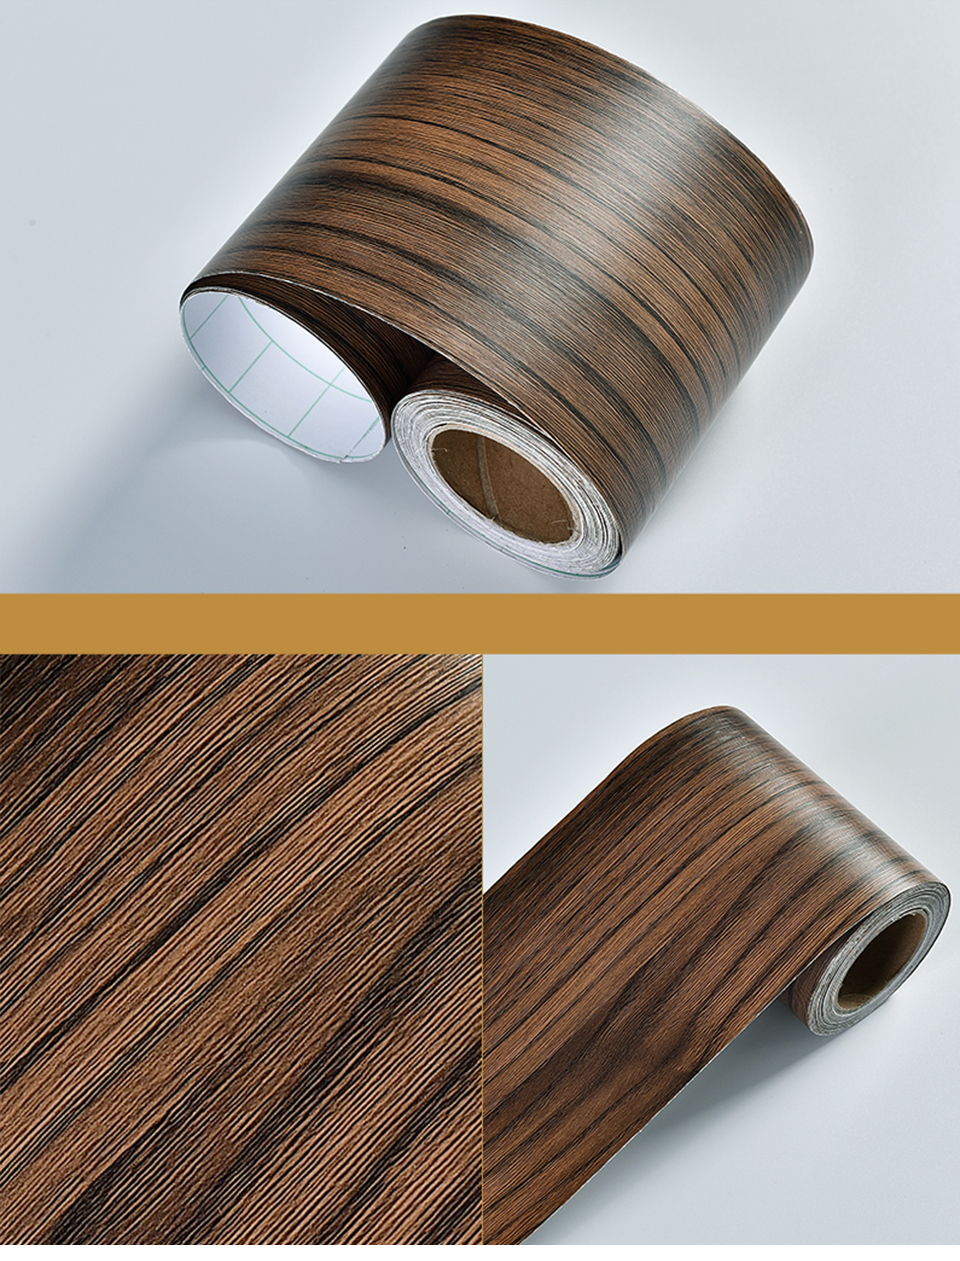 Wood Self Adhesive Window Decal Living Room Floor Border Skirting Contact Paper Waterproof Waist Line Wallpaper Home Improvement H70a335d46fd442e48bc7718fc6fe07c0H